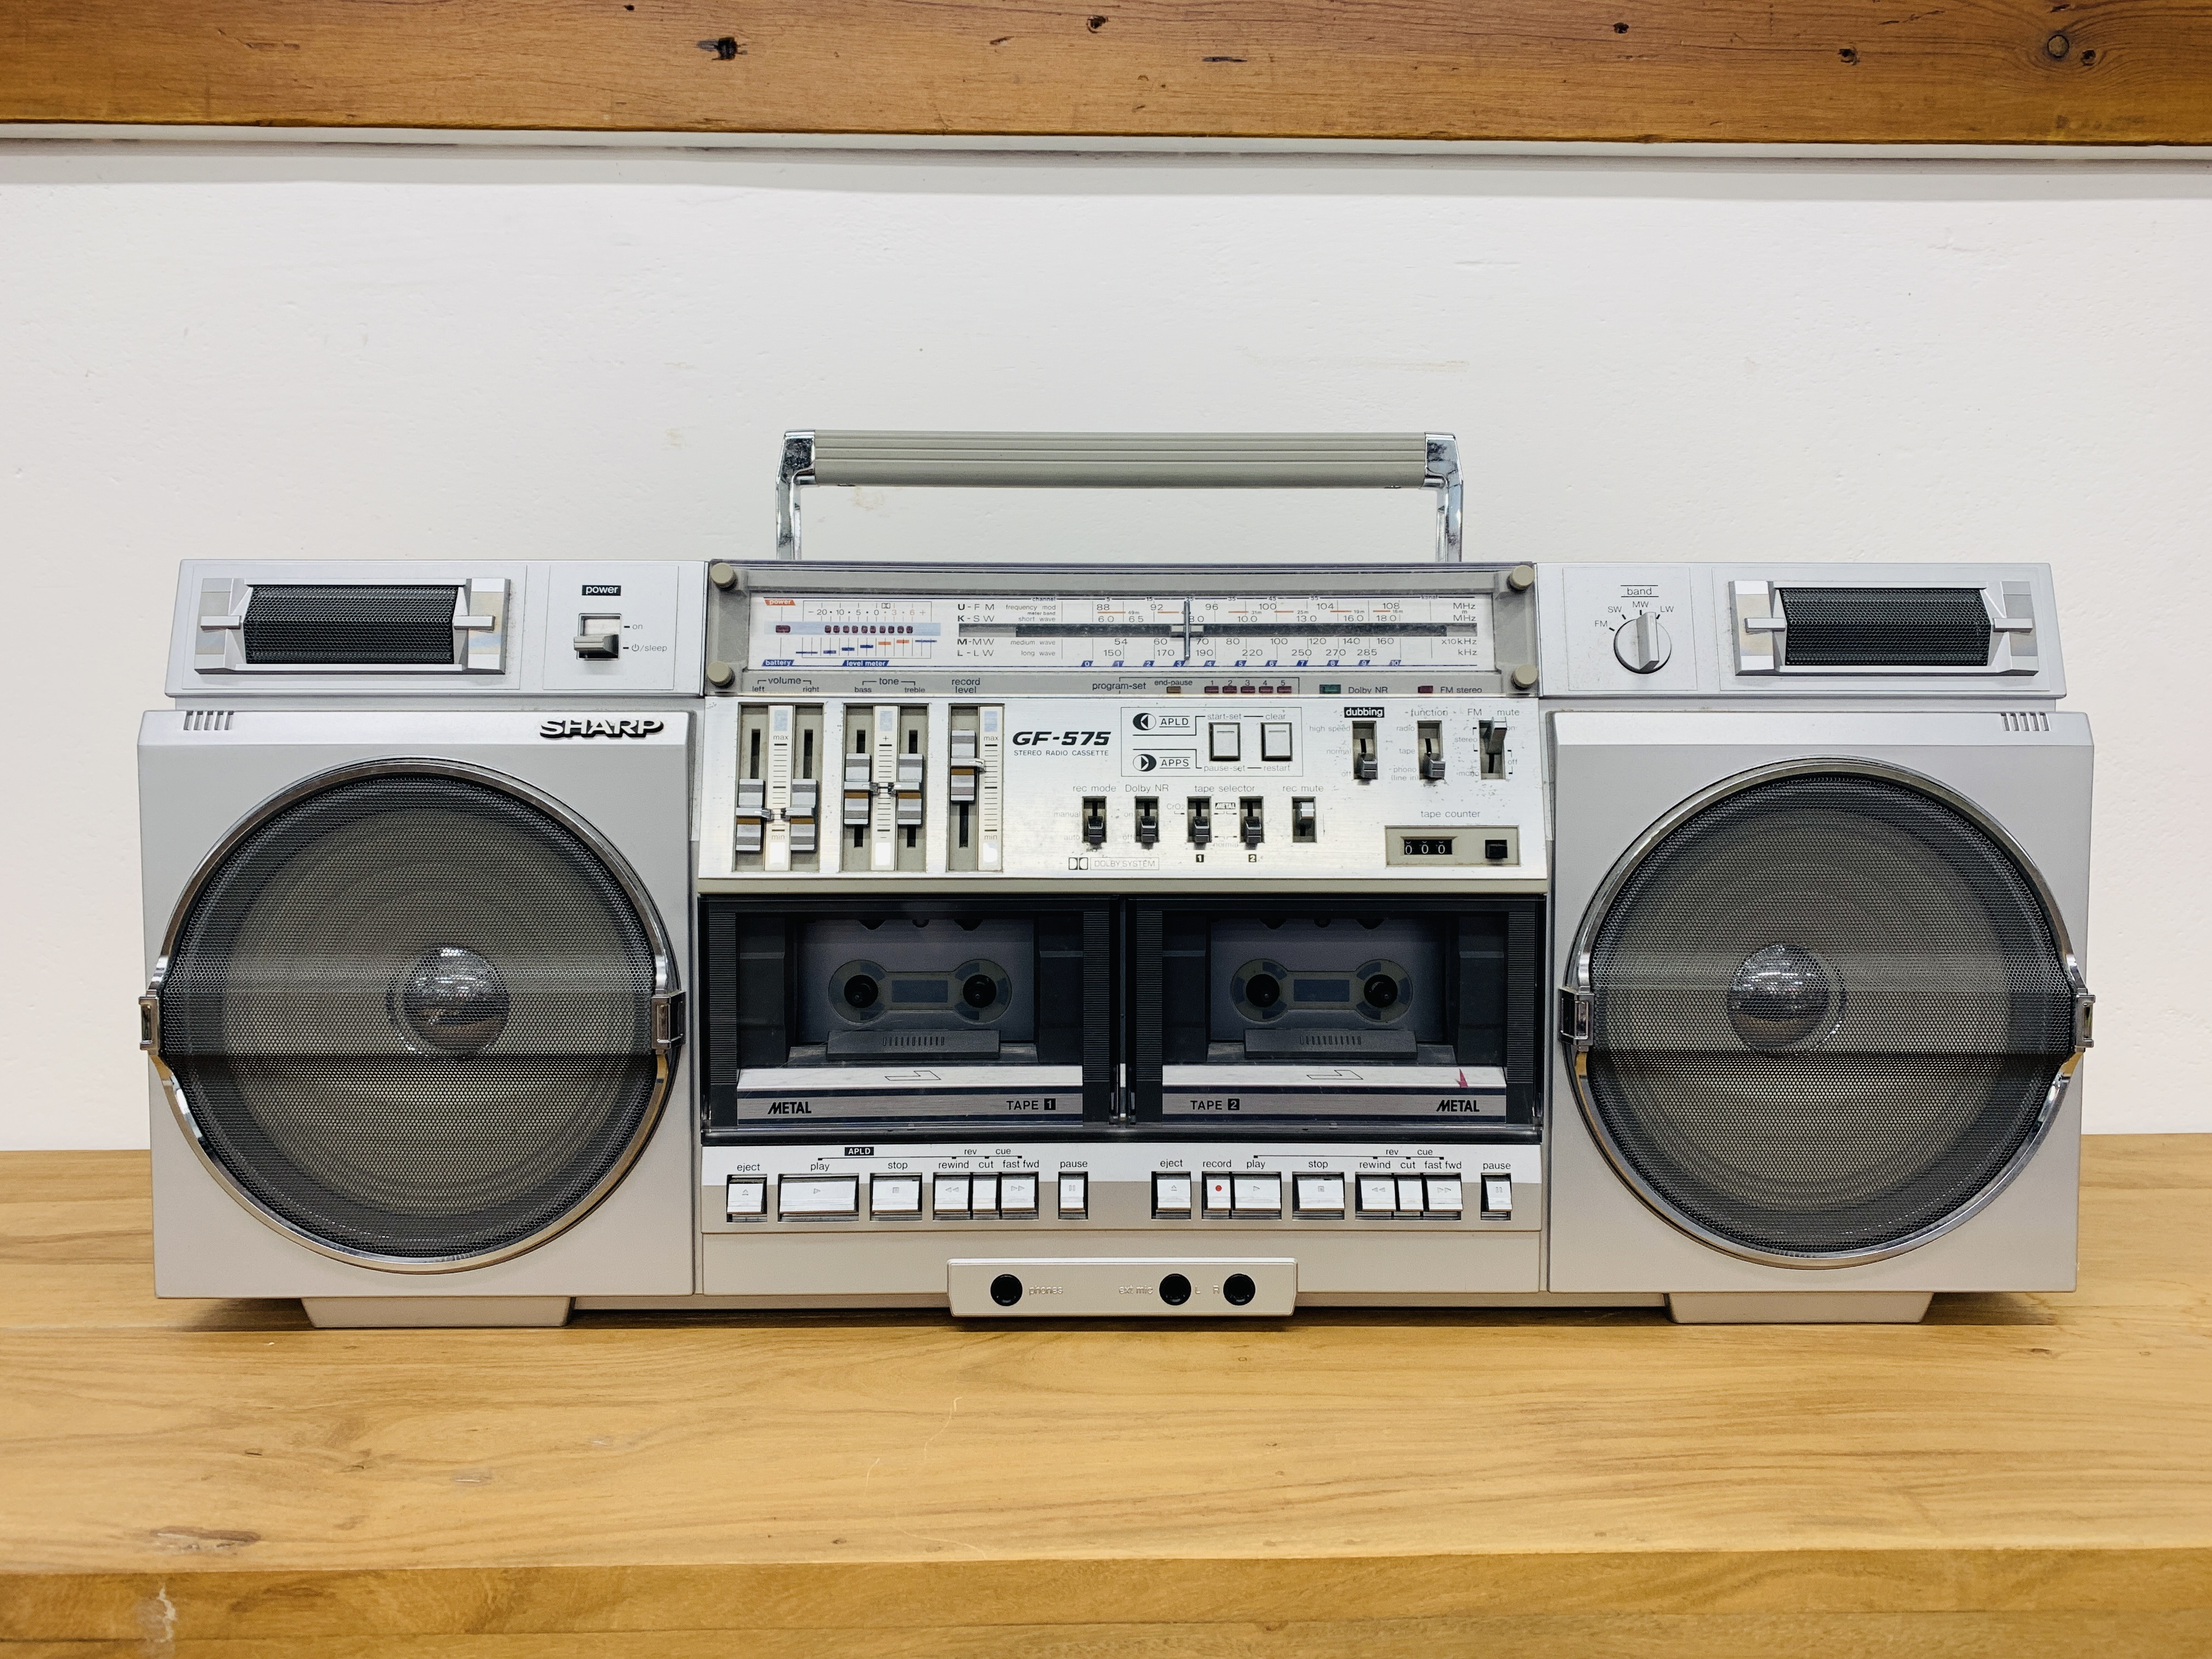 SHARP DELUXE FH / SW / MW / LW 4 BAND STEREO RADIO CASSETTE TAPE RECORDER GF- 575E WITH ORIGINAL - Image 2 of 8